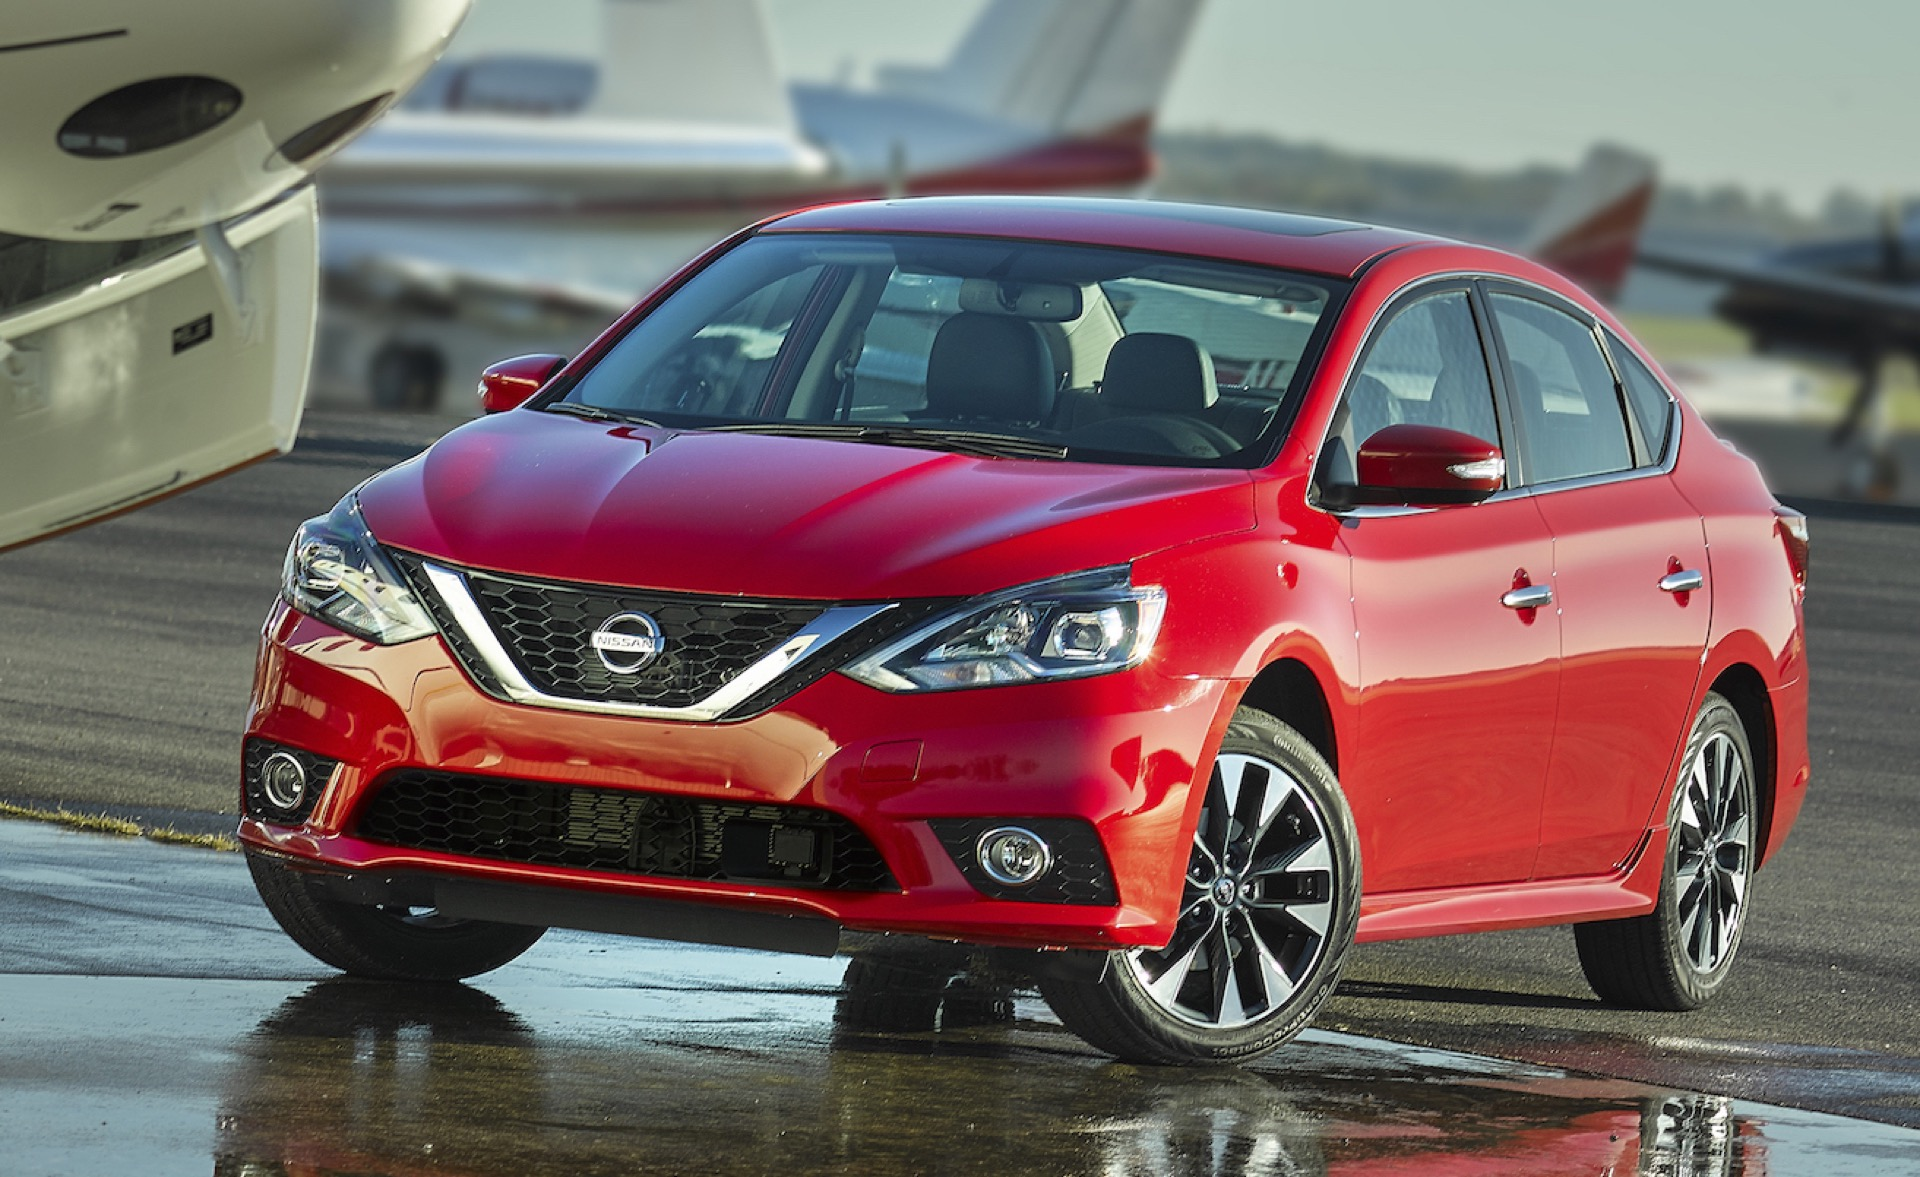 2016 Nissan Sentra Achieves Top Safety Pick Plus Rating By The Insurance Insute For Highway